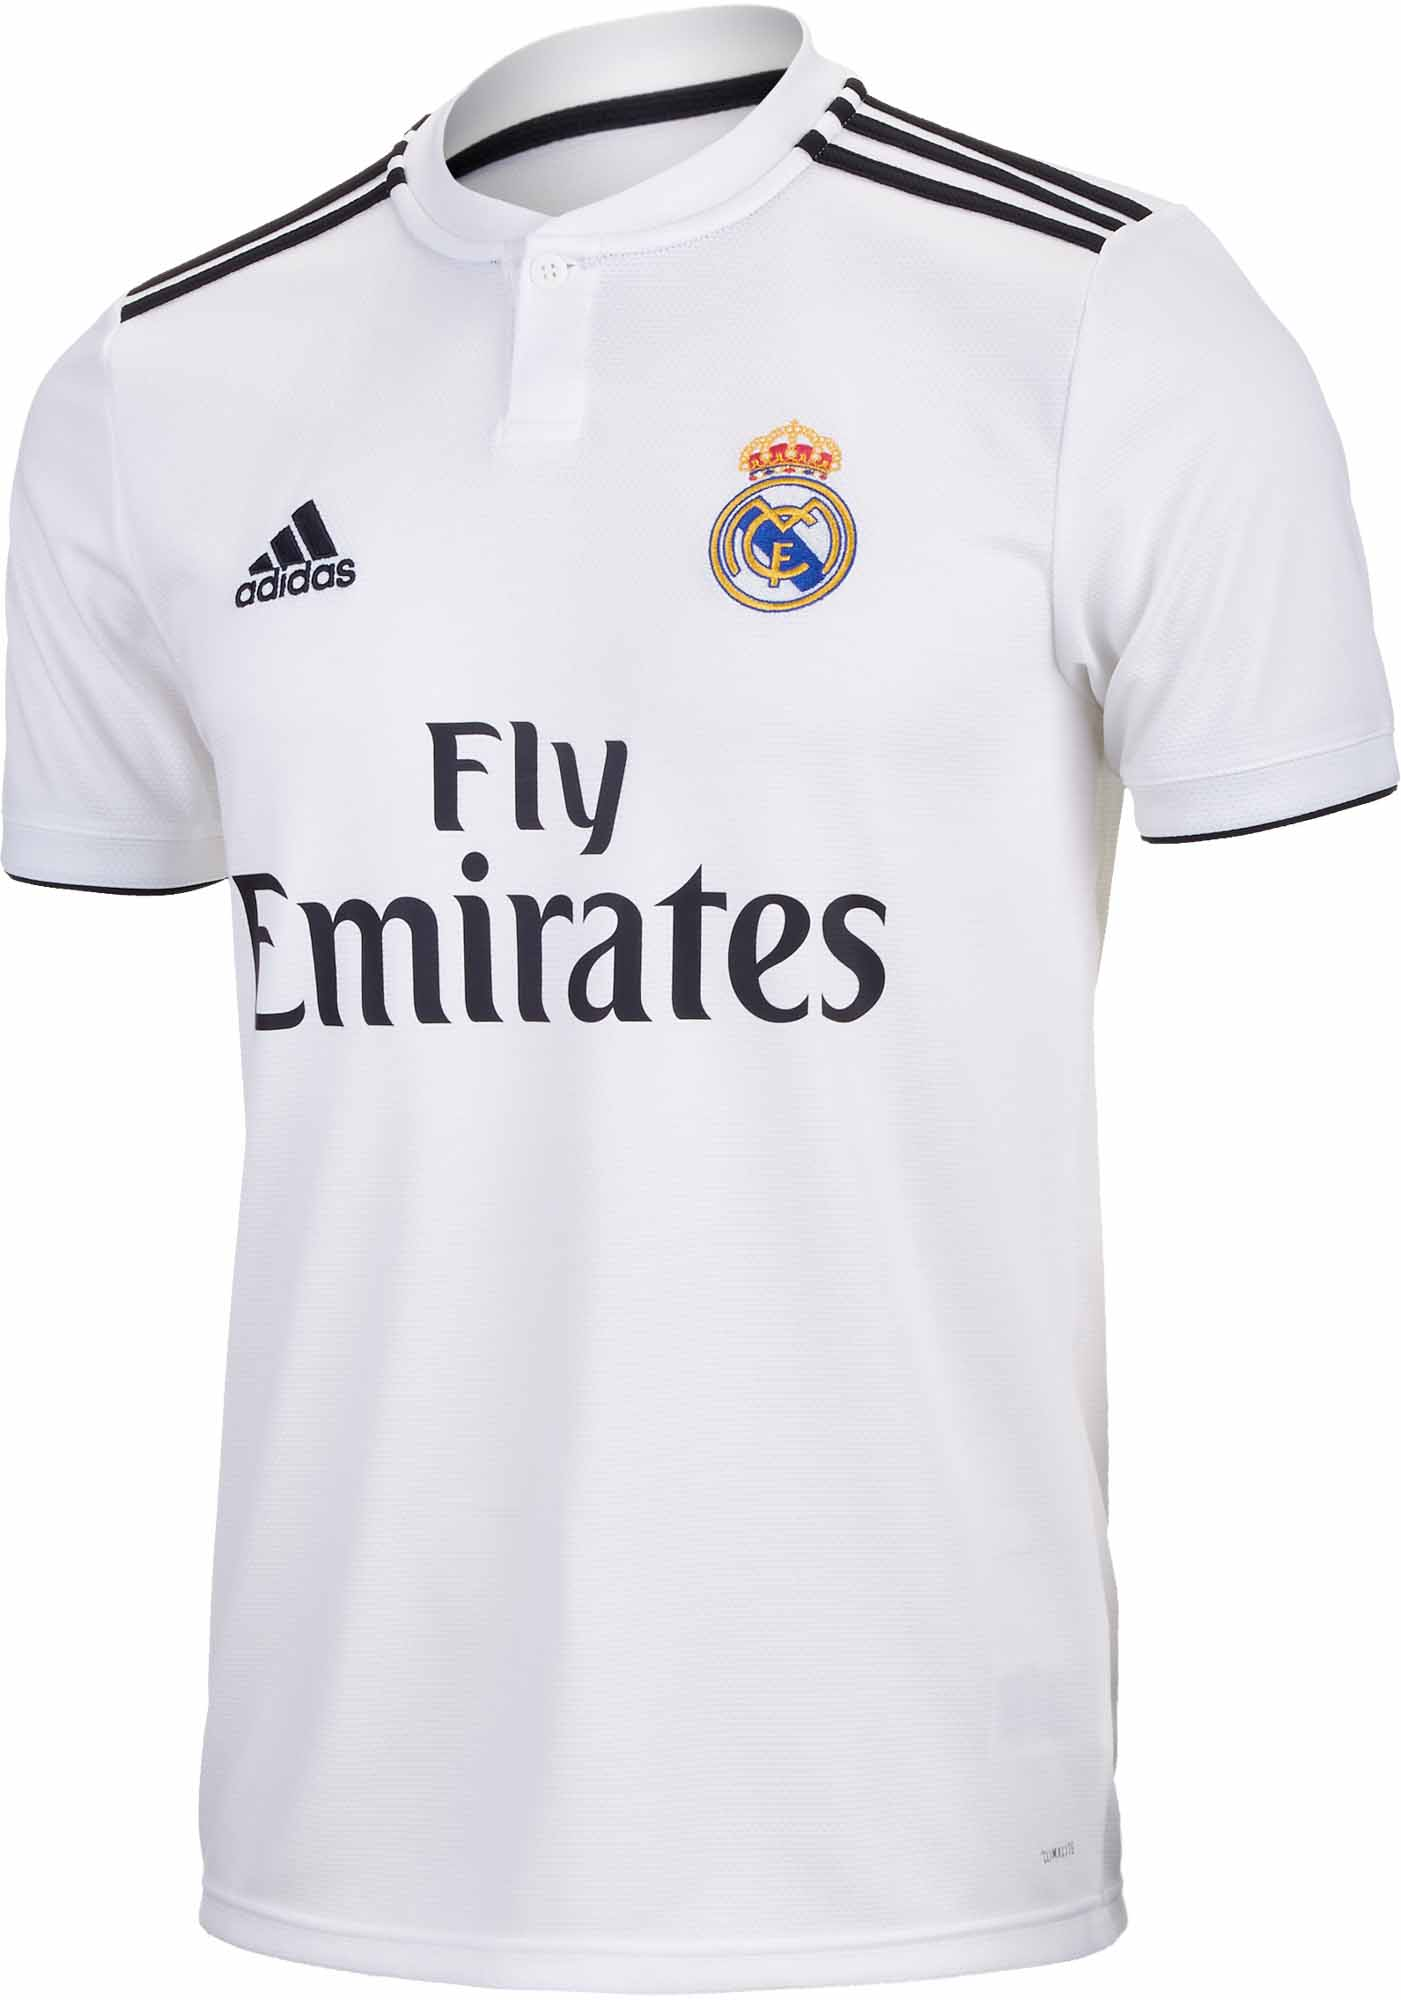 Black And White Madrid adidas real madrid home jersey - core white/black